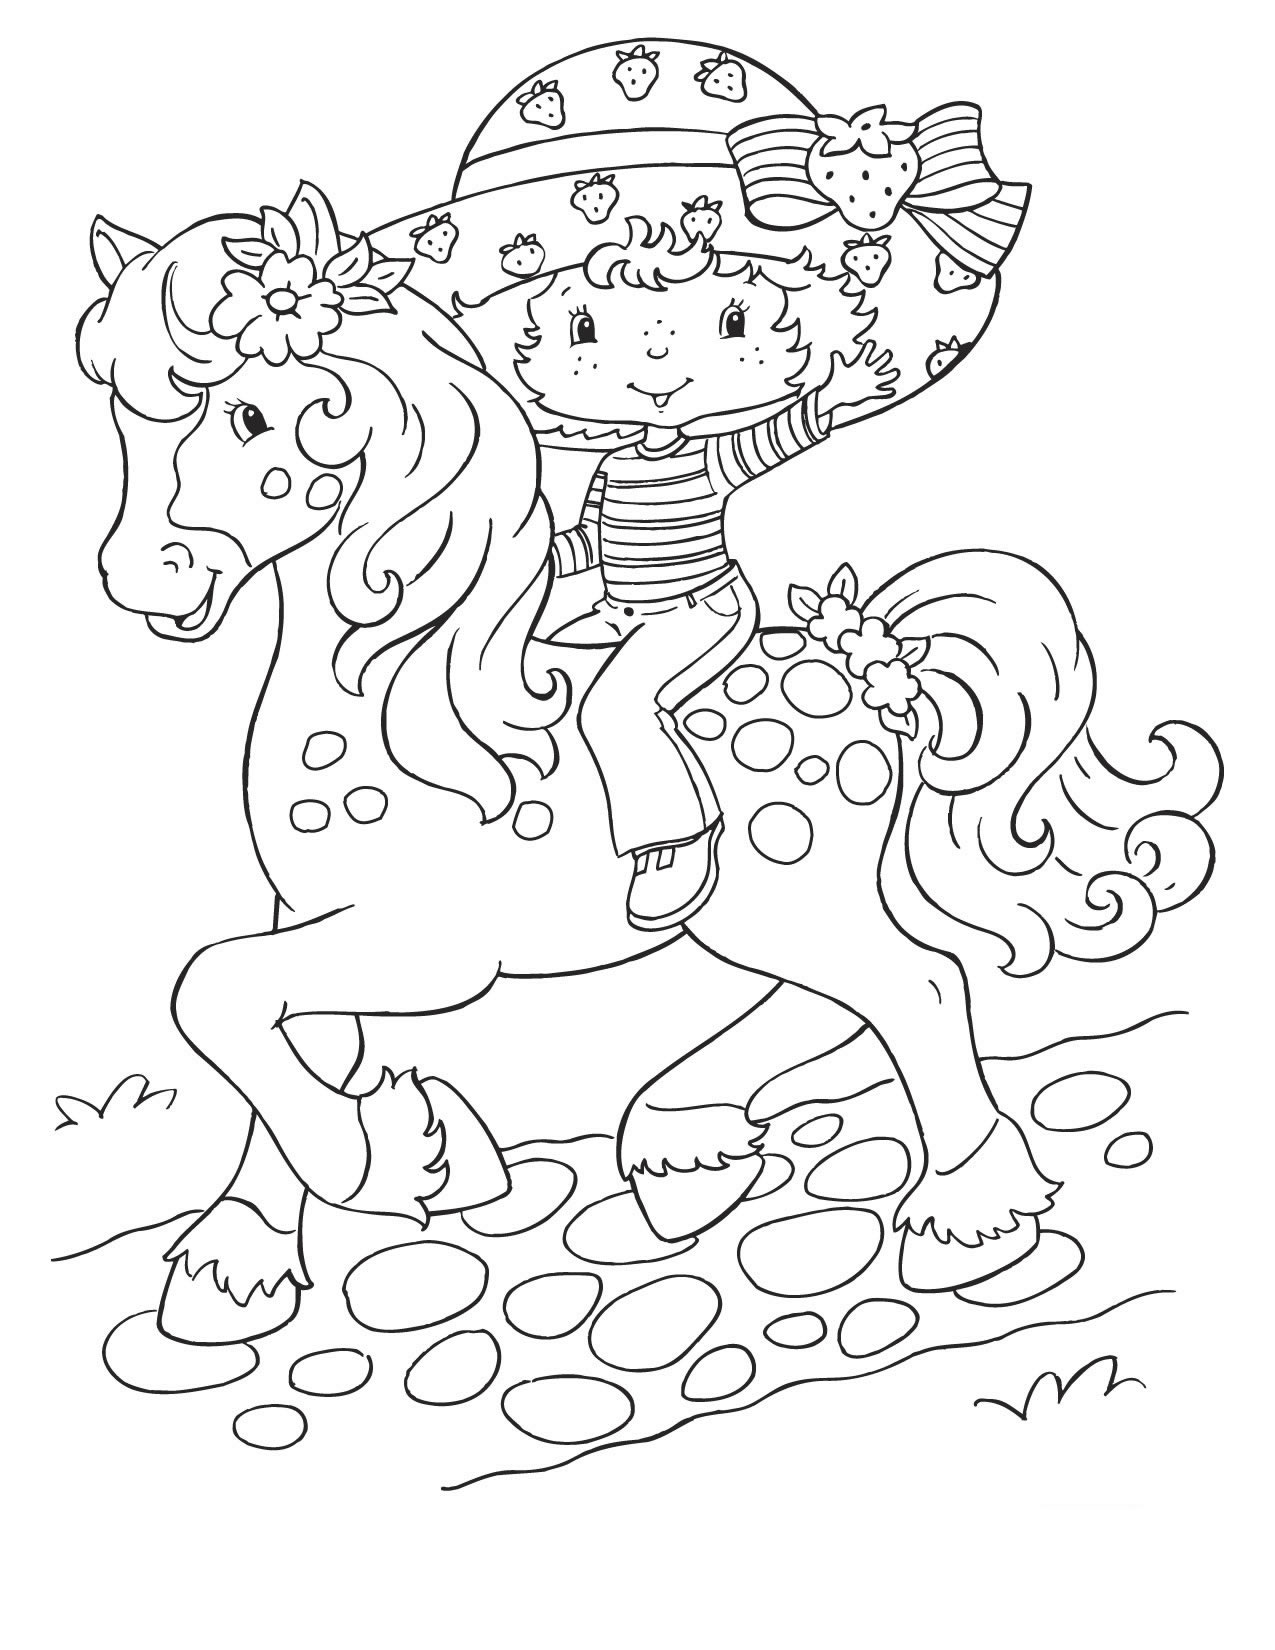 11 Strawberry Shortcake Coloring Page To Print